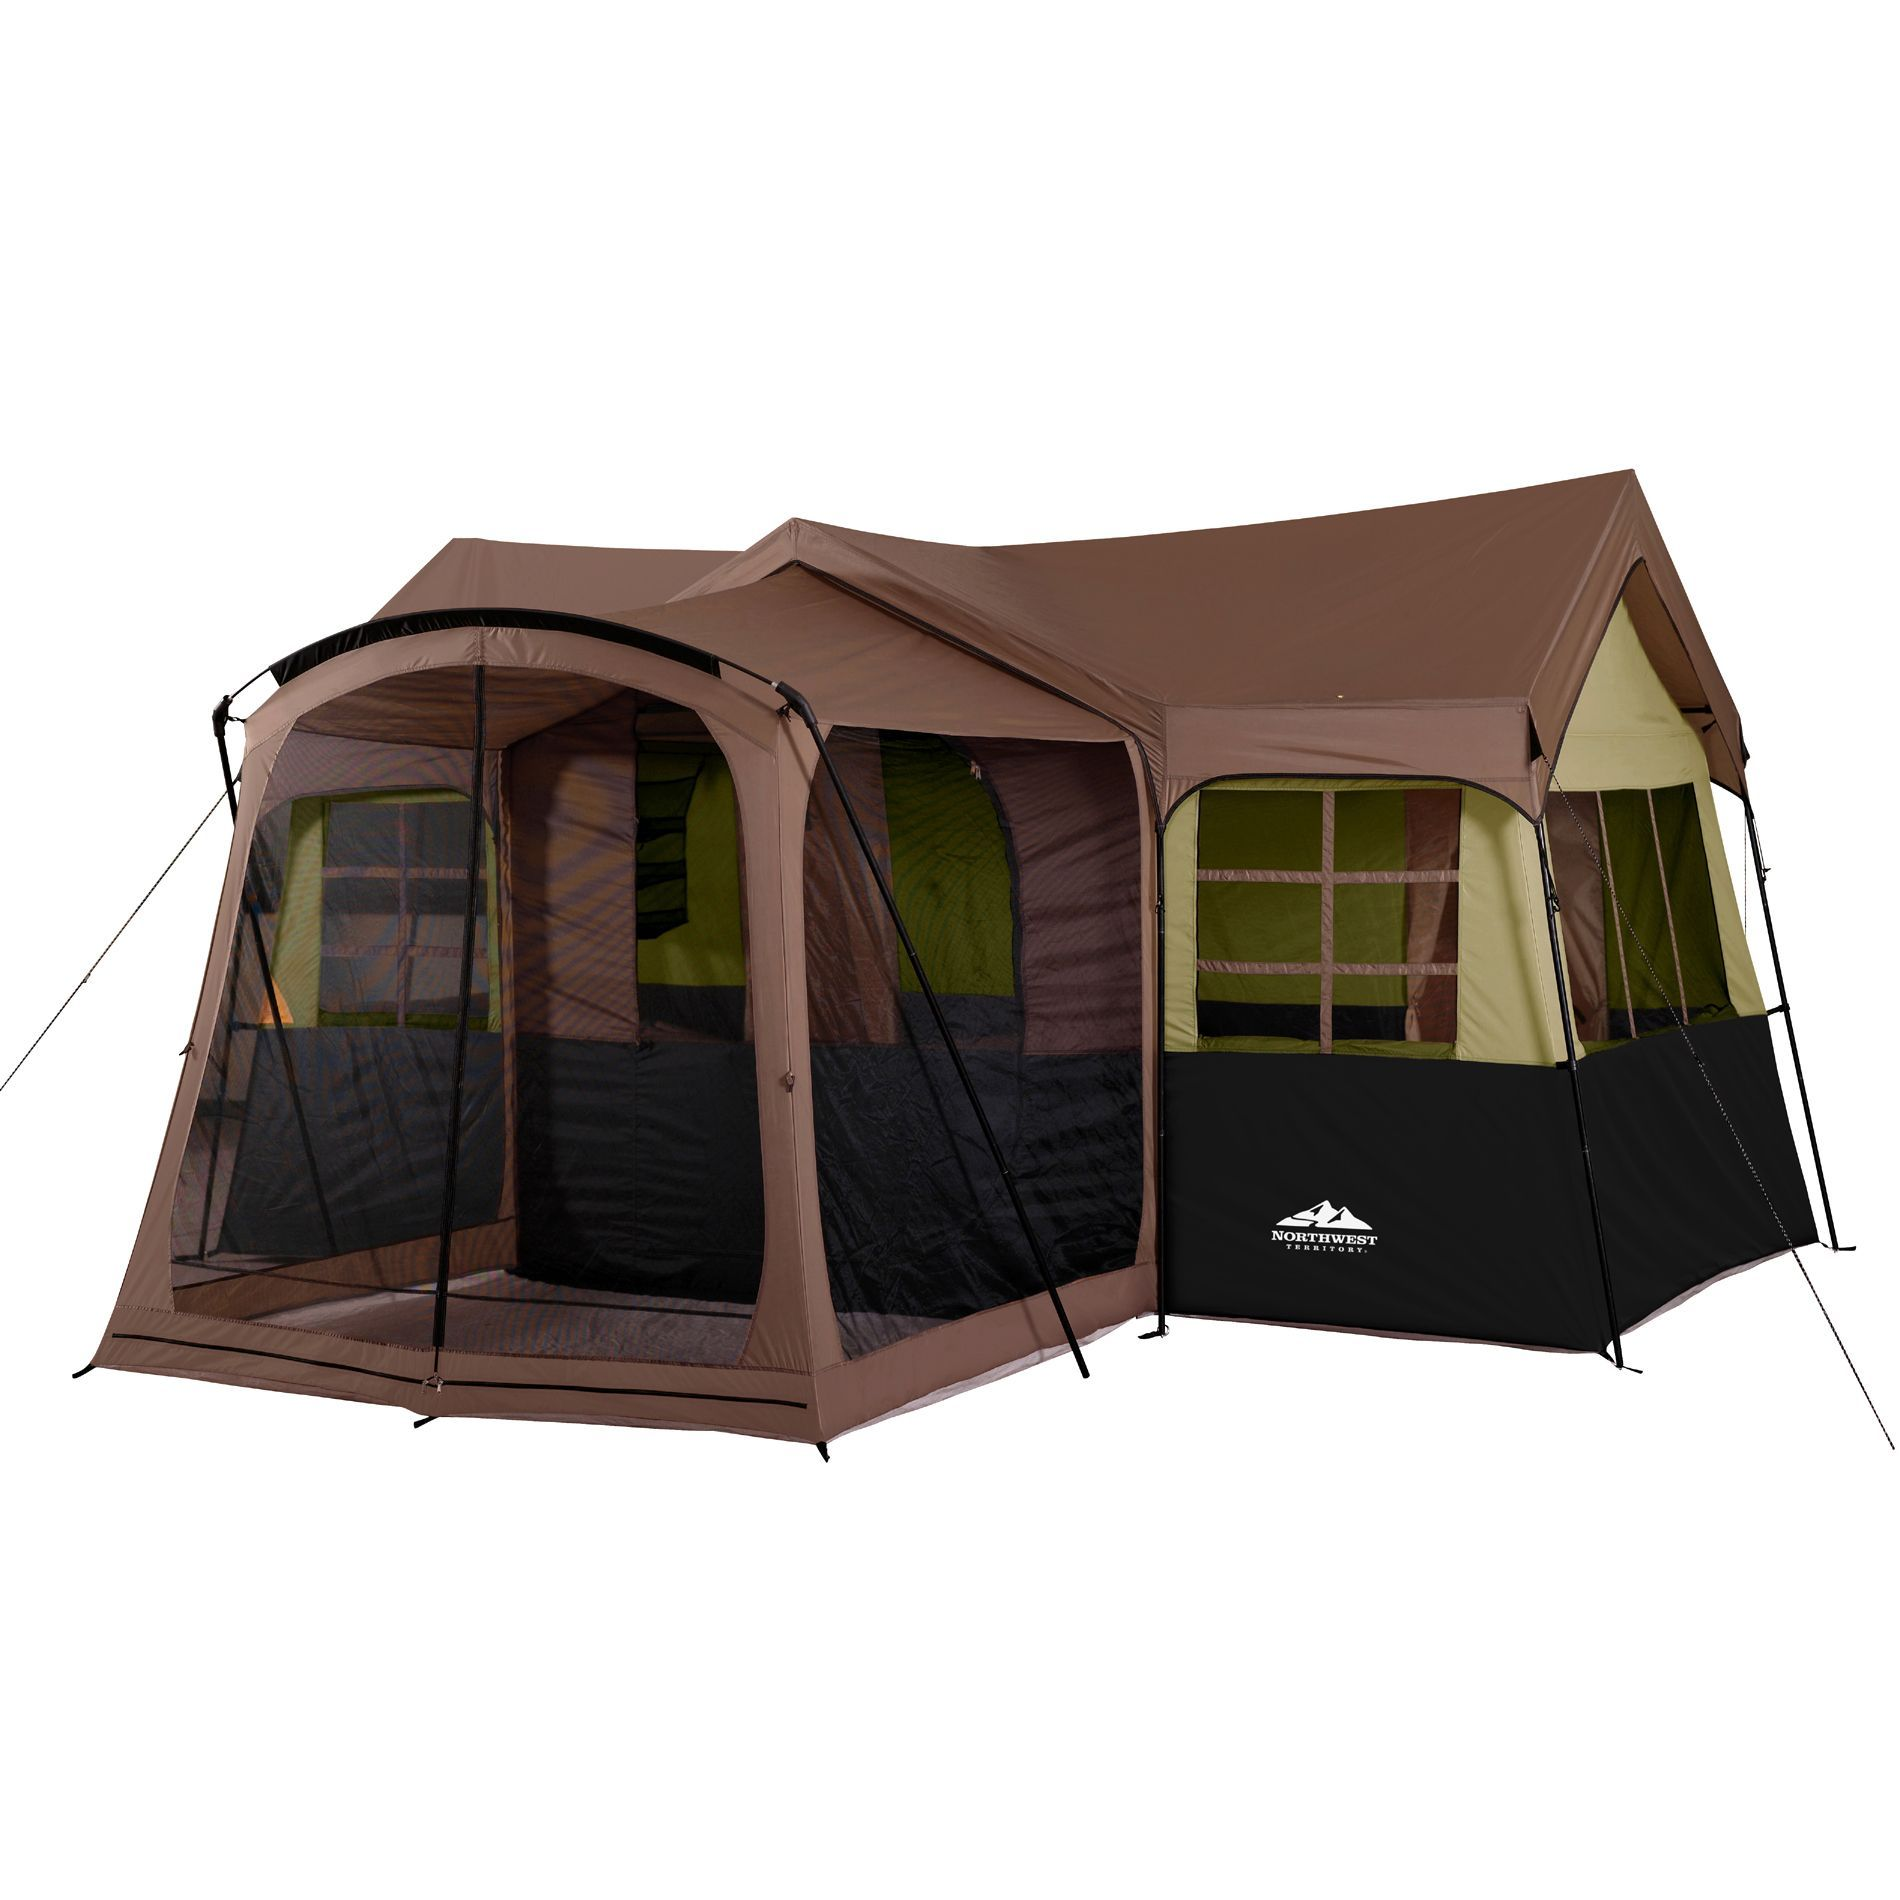 This Big Sky Lodge Family Cabin Has A Large And Comfy Screen House Porch To Provide Bug Free Enjoyment Of Porch Tent Family Tent Camping Best Tents For Camping